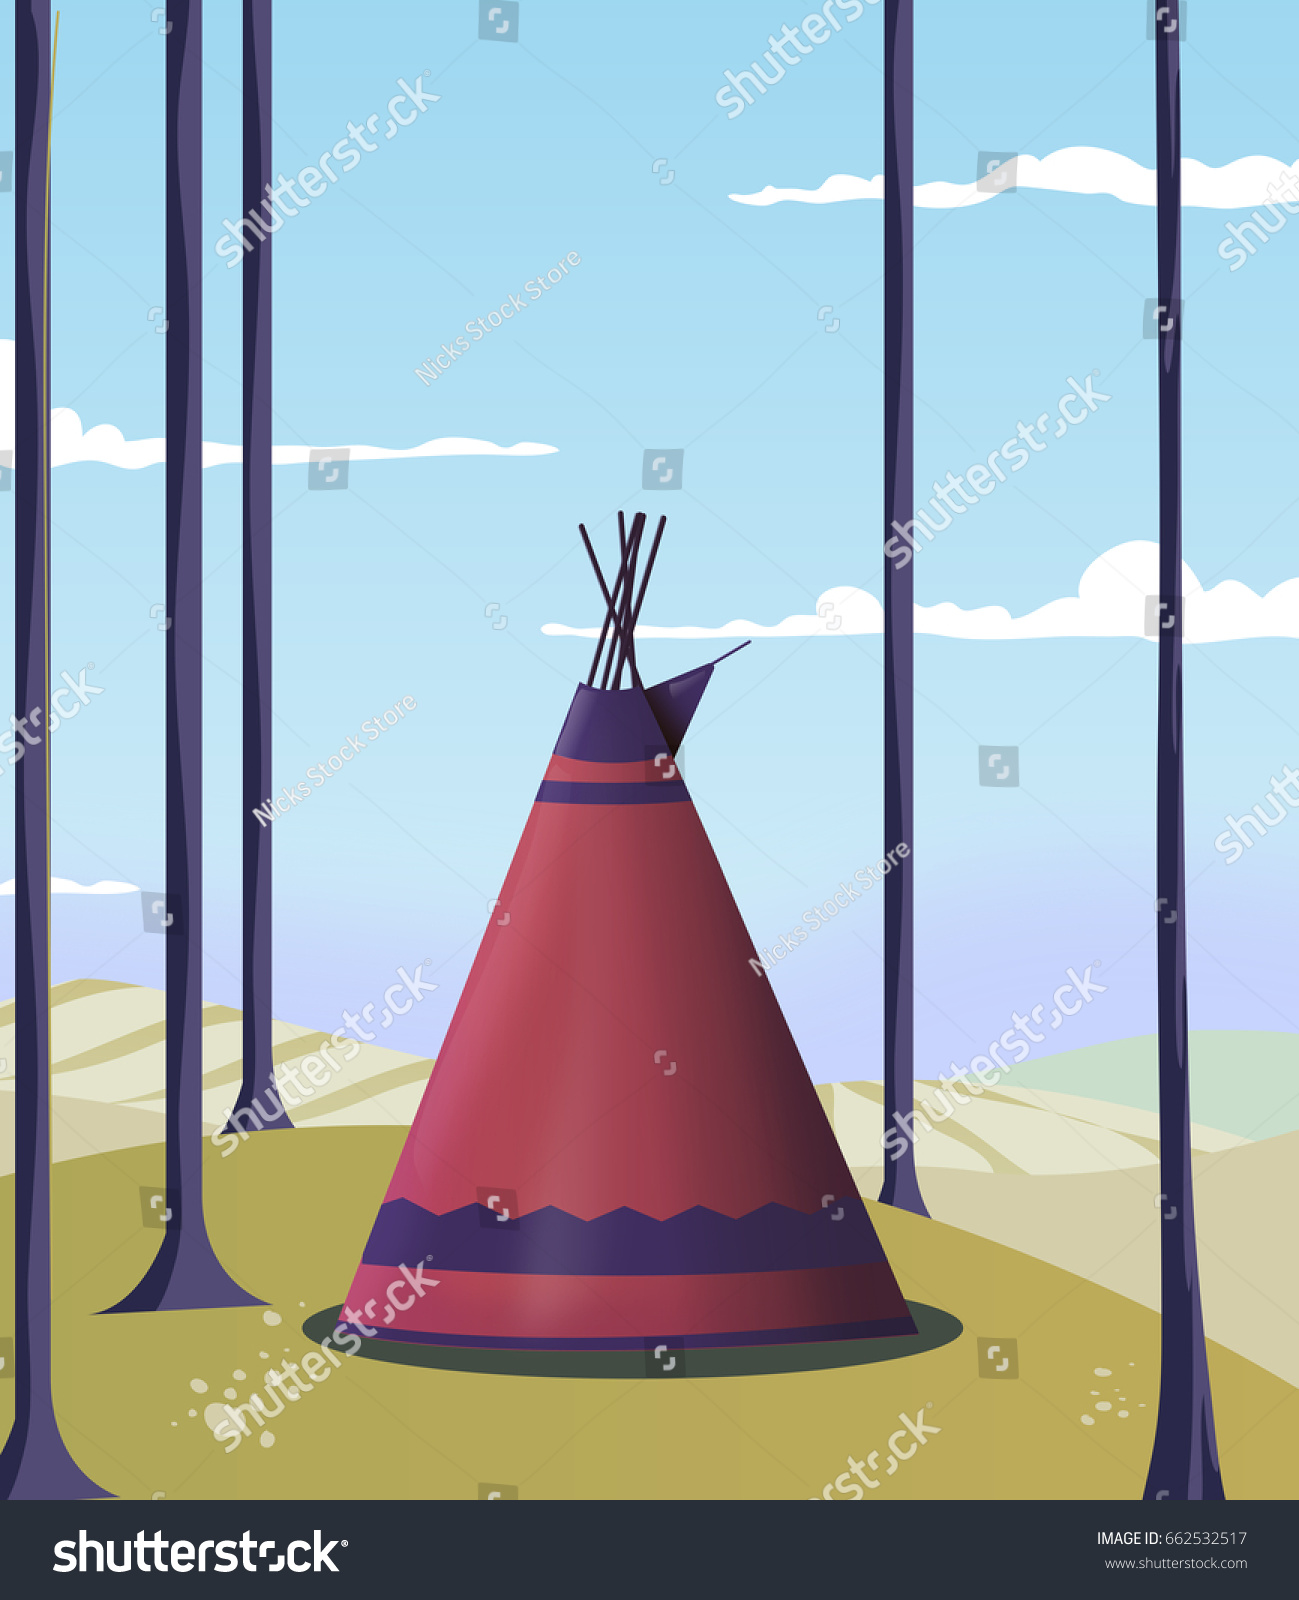 A wigwam tent outside in the woodland during the day. & Wigwam Tent Outside Woodland During Day Stock Illustration 662532517 ...